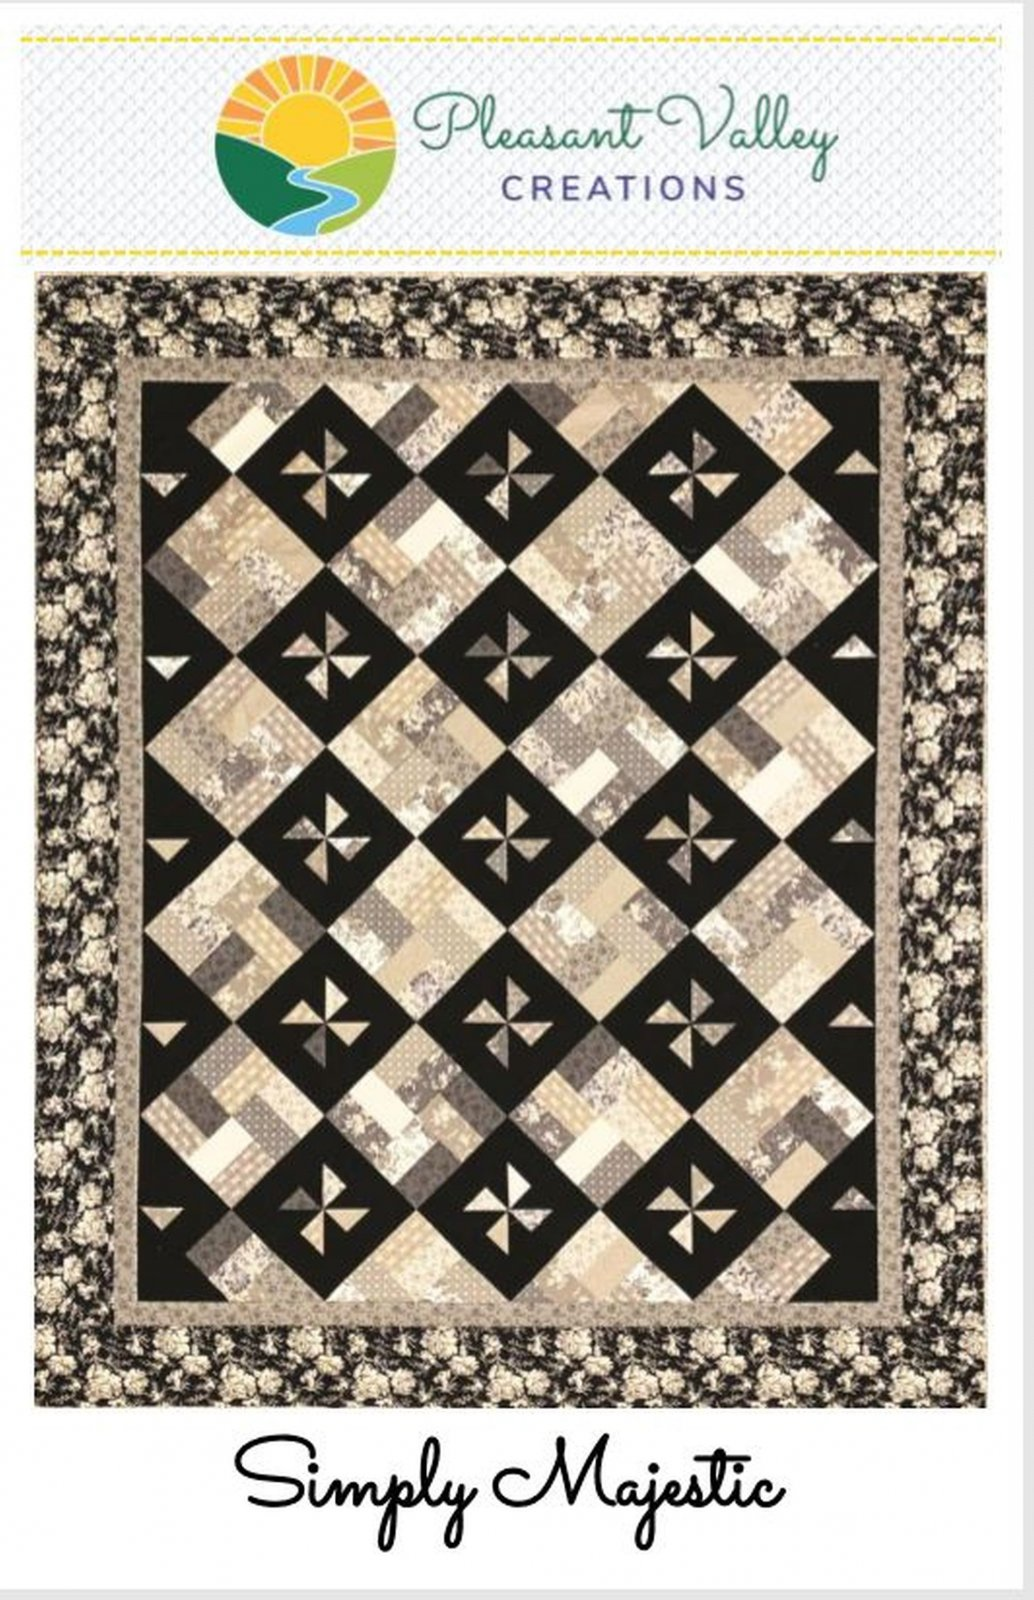 Simply Majestic Quilt Pattern - digital download #456